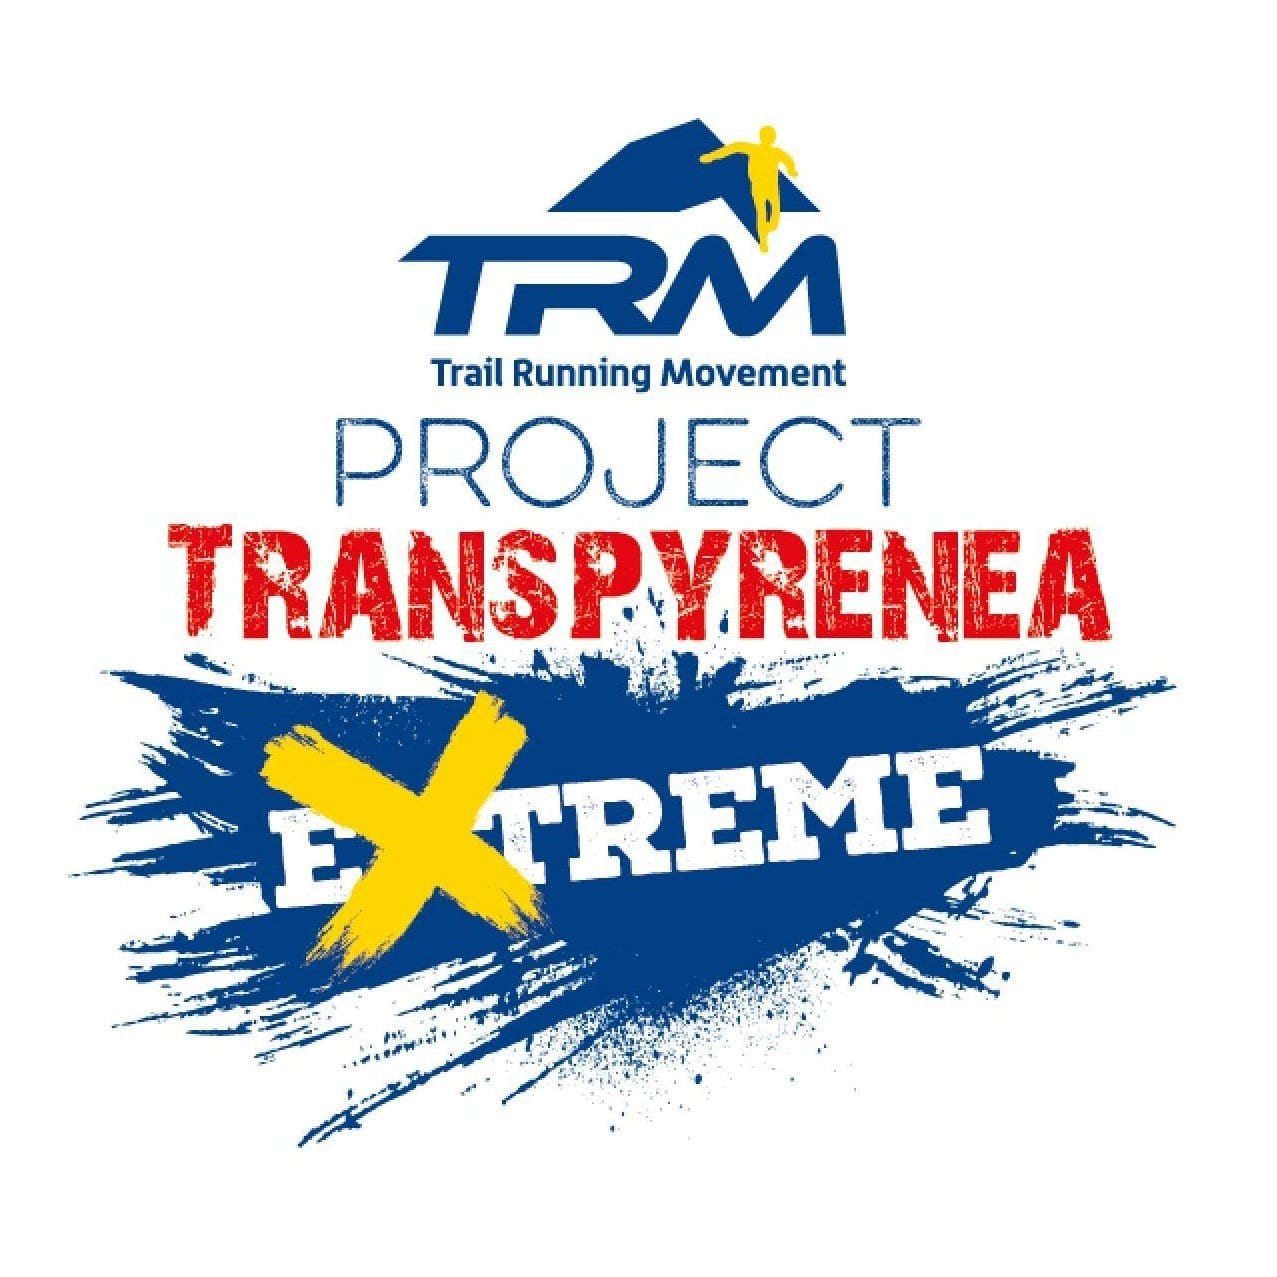 HOW FAR CAN YOU PUSH HUMAN BODY LIMITS? PRESENTED THE TRANSPYRENEA EXTREME PROJECT